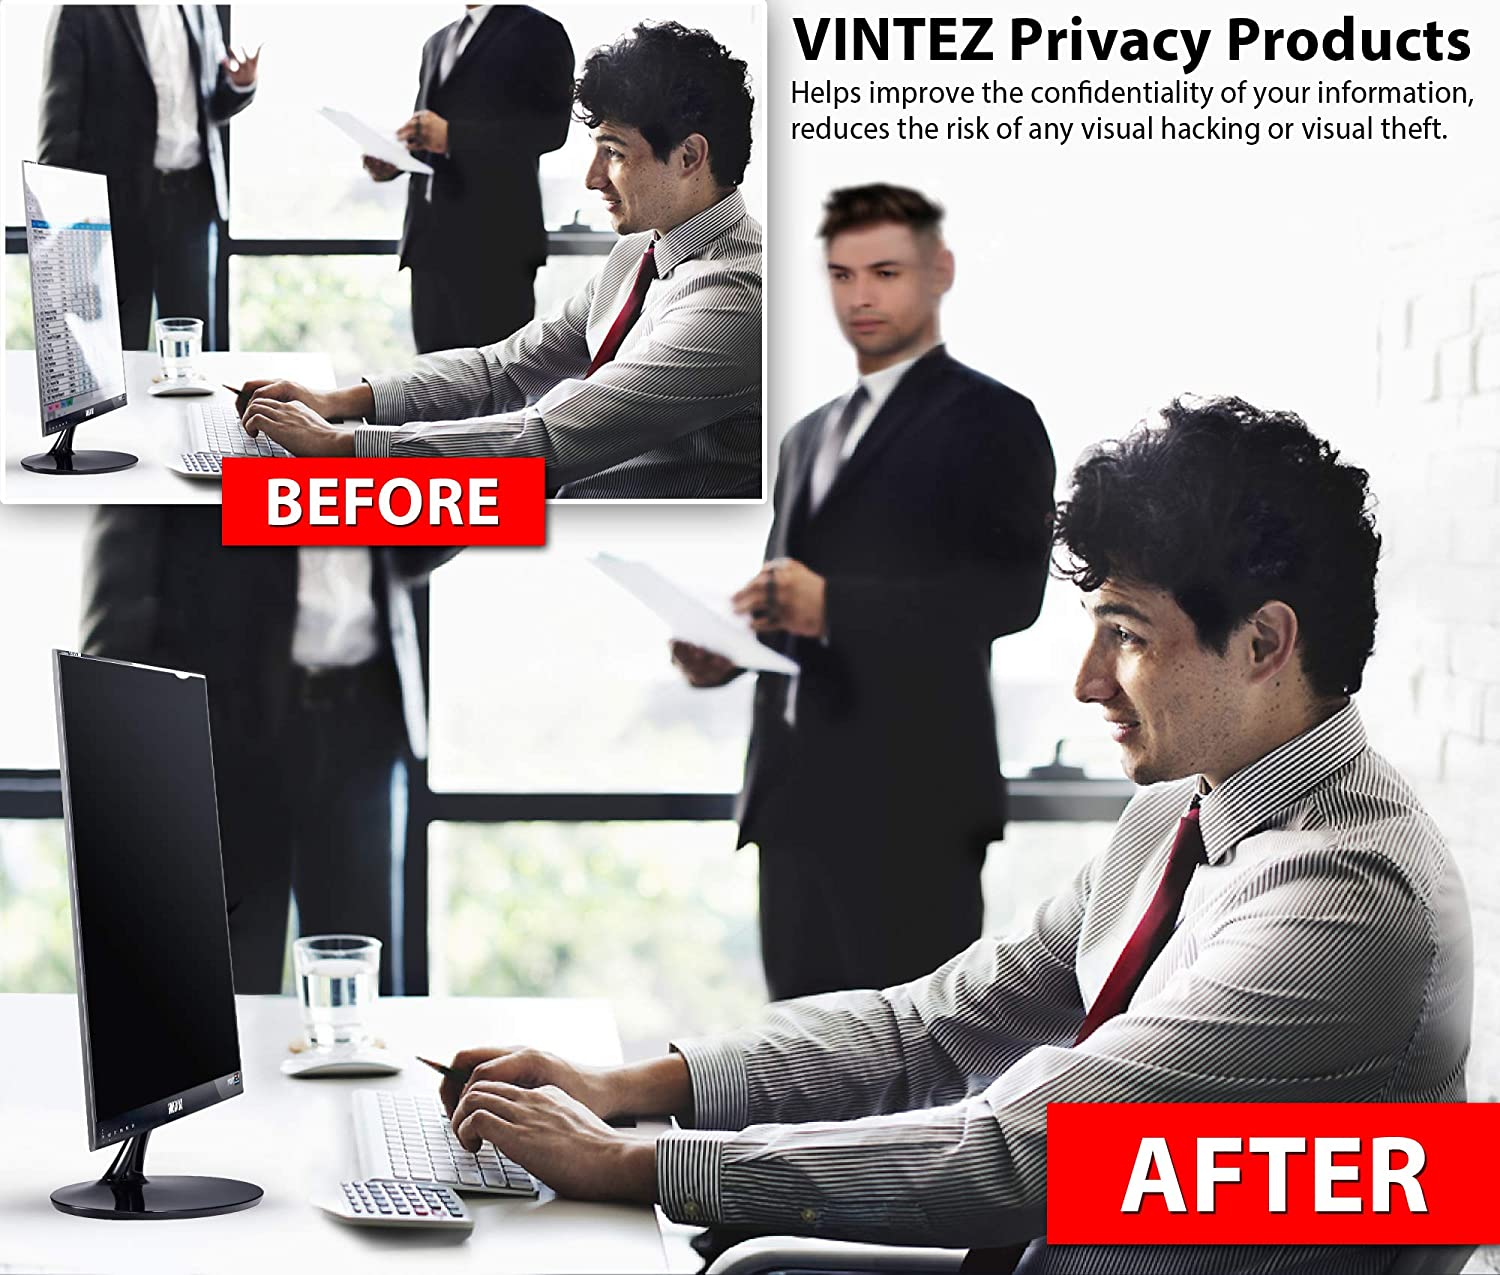 We Offer 2 Different 24 Filter Sizes Anti-Glare Anti-Scratch Protector Film for Data confidentiality VINTEZ 24 Inch Computer Privacy Screen Filter for Widescreen Computer Monitor